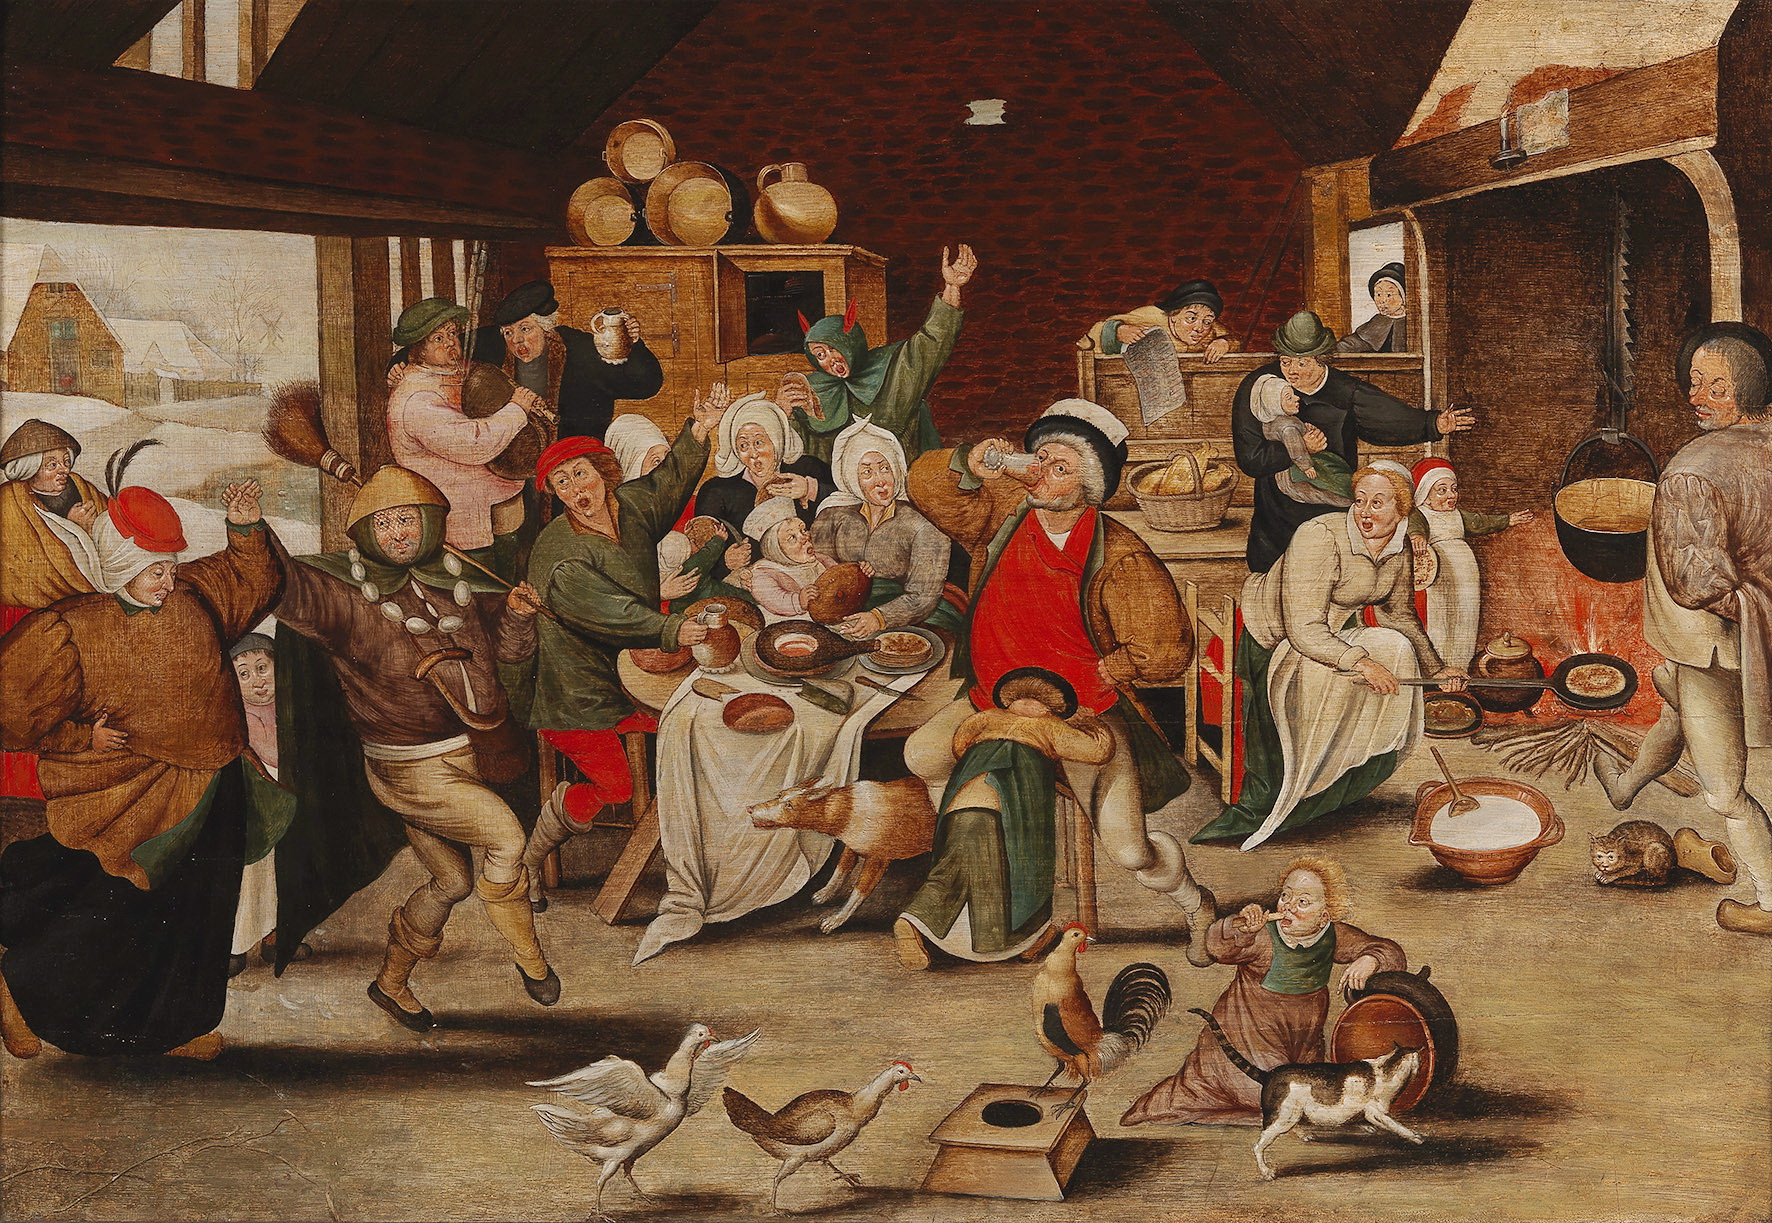 Pieter Brueghel II (1564:65-1637:38), « The King Drinks », image ©Dorotheum